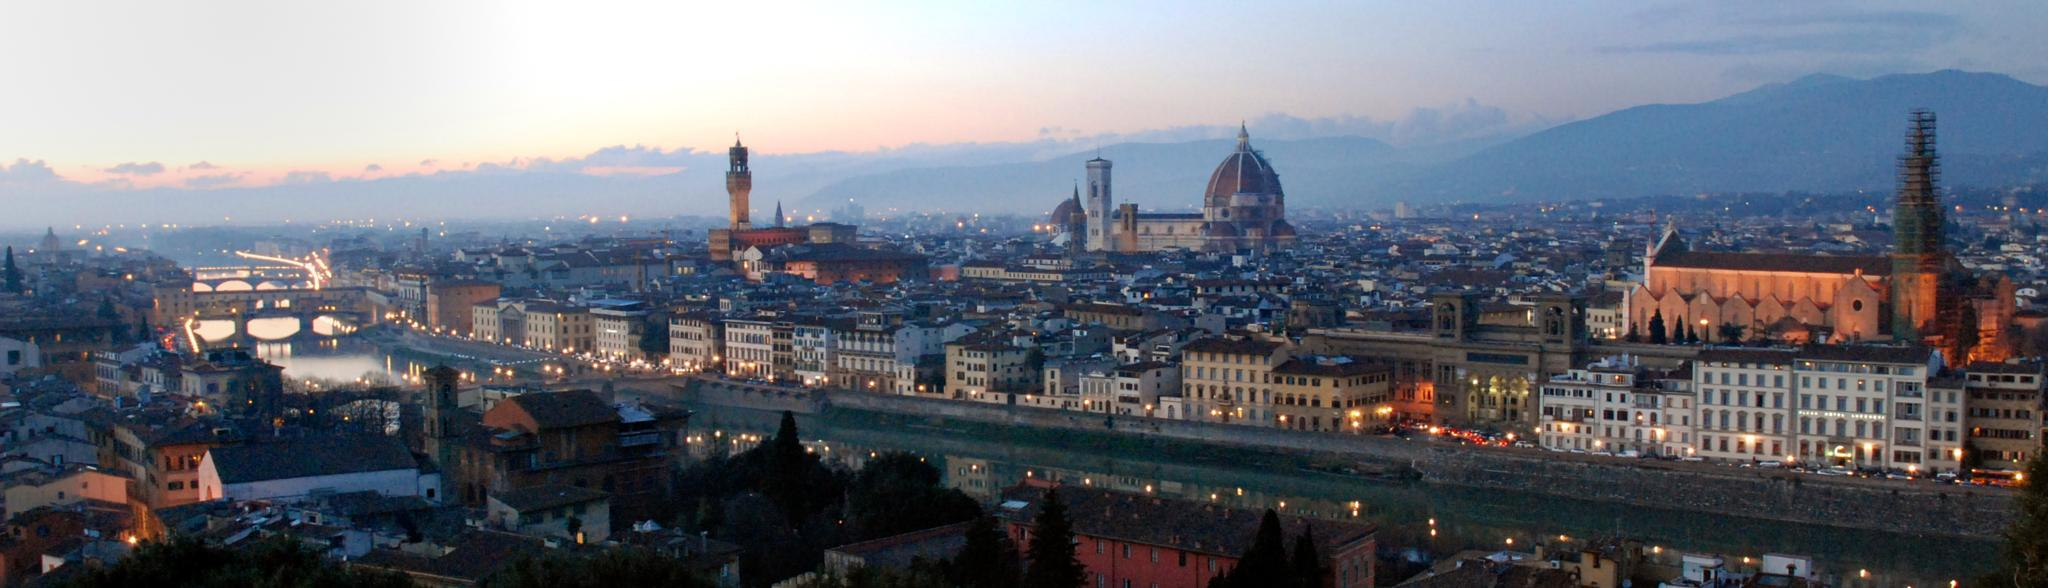 Firenze/Florence by ciocca.alessandro